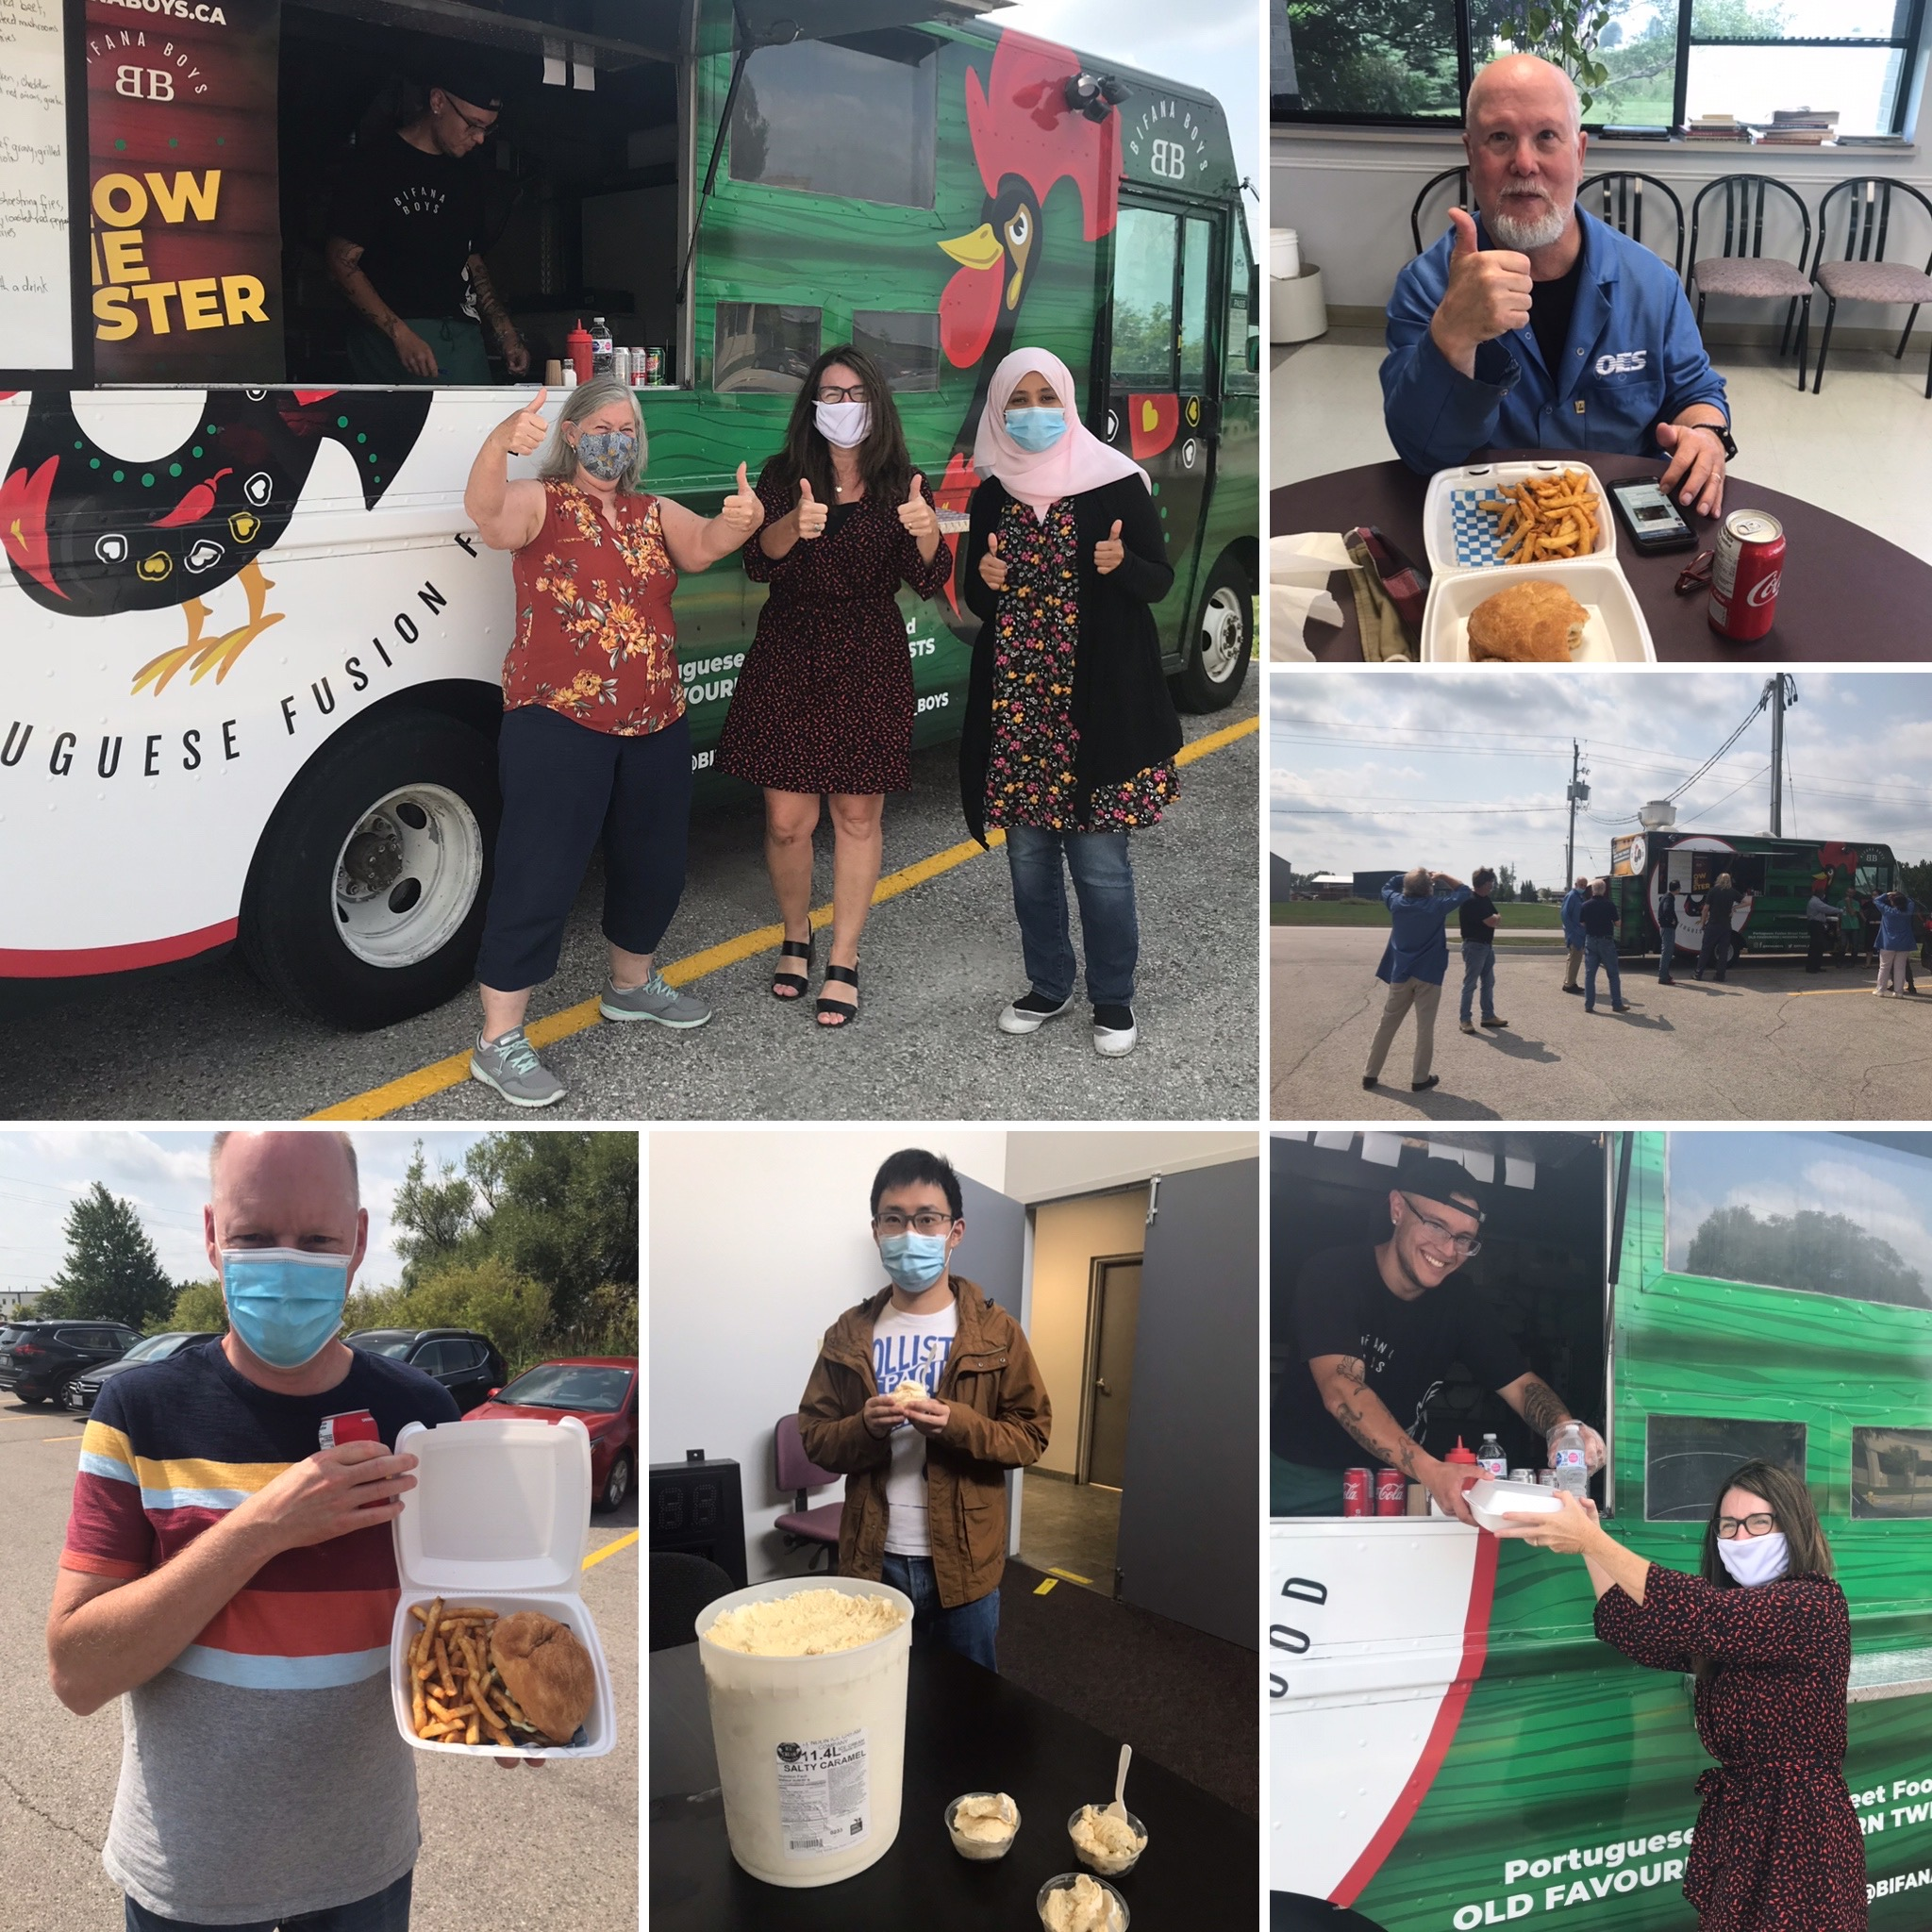 collage of photos showing people wearing face coverings and eating from a food truck